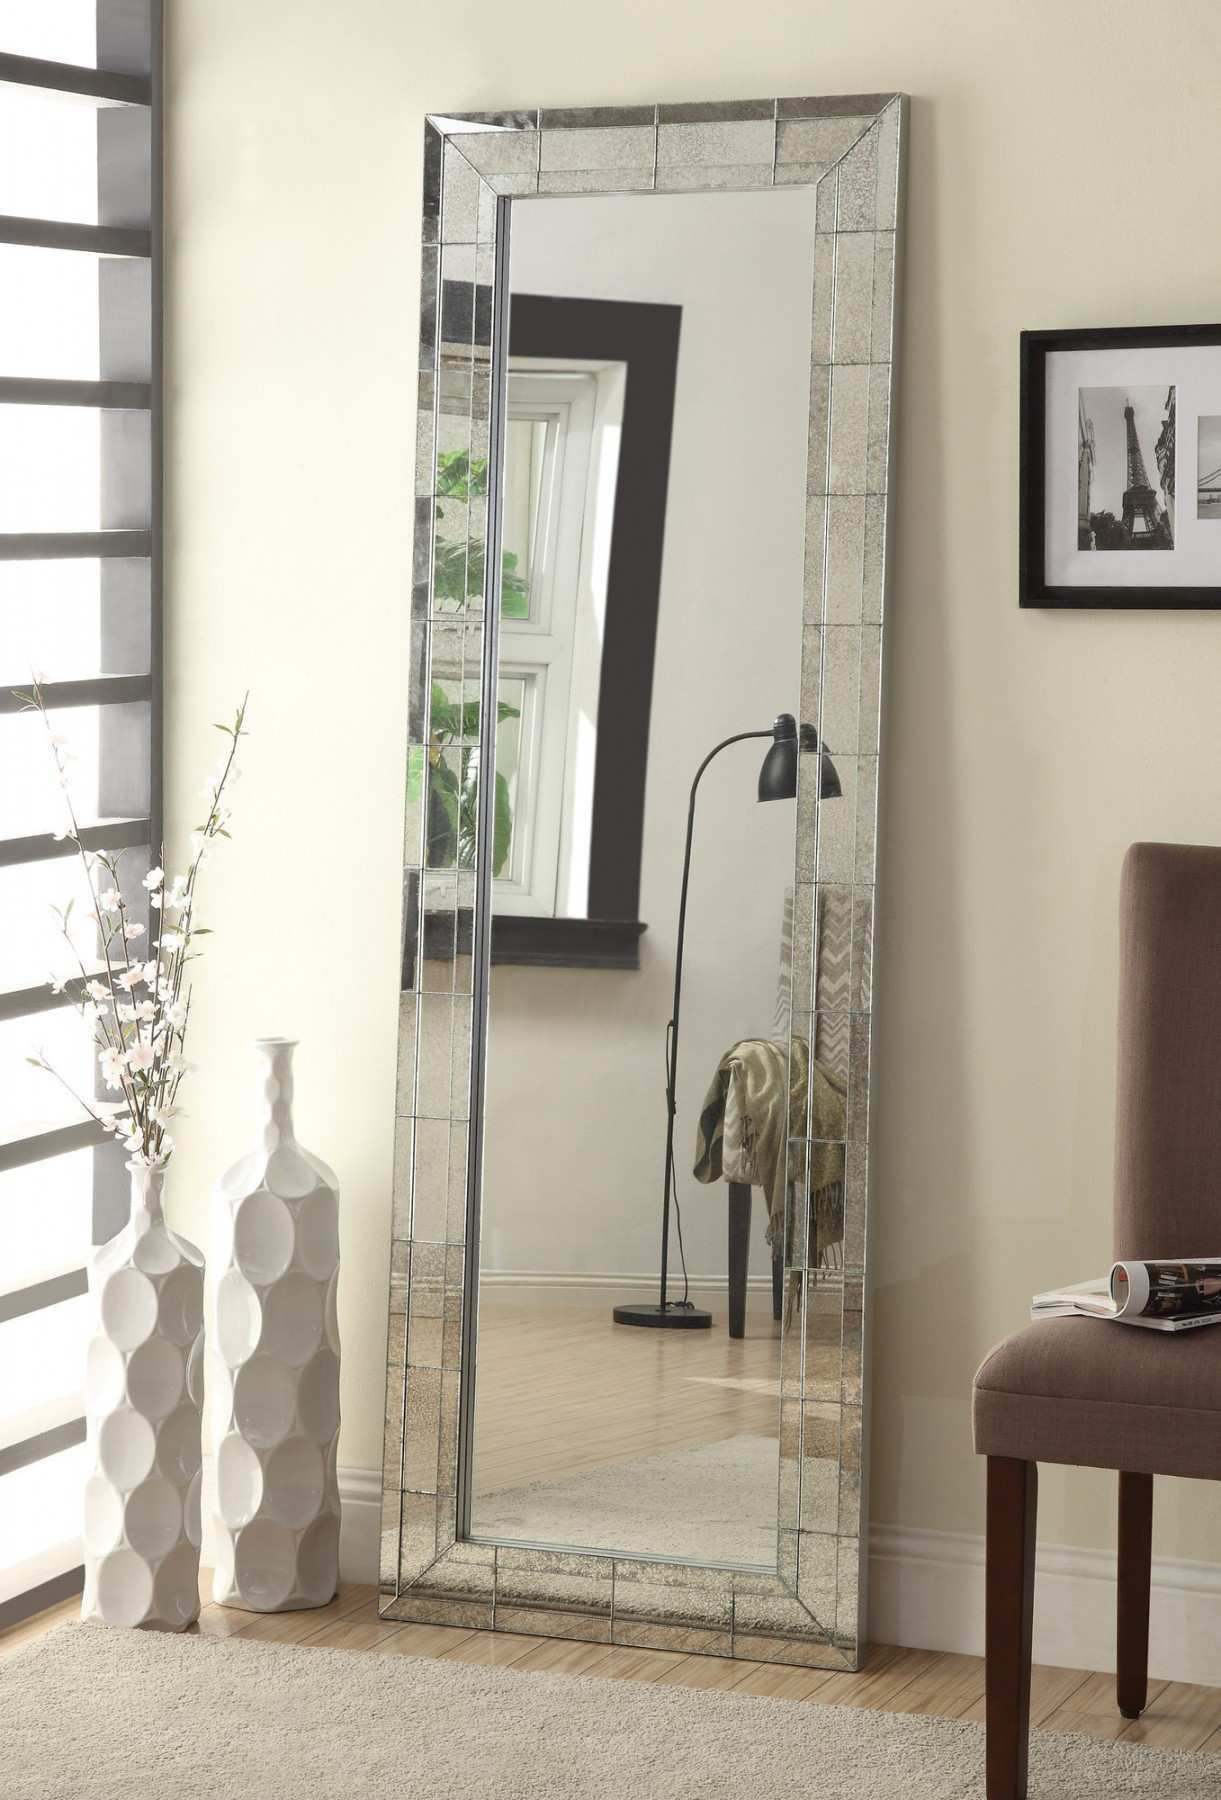 stand alone mirrors bedroom Criedineassistant